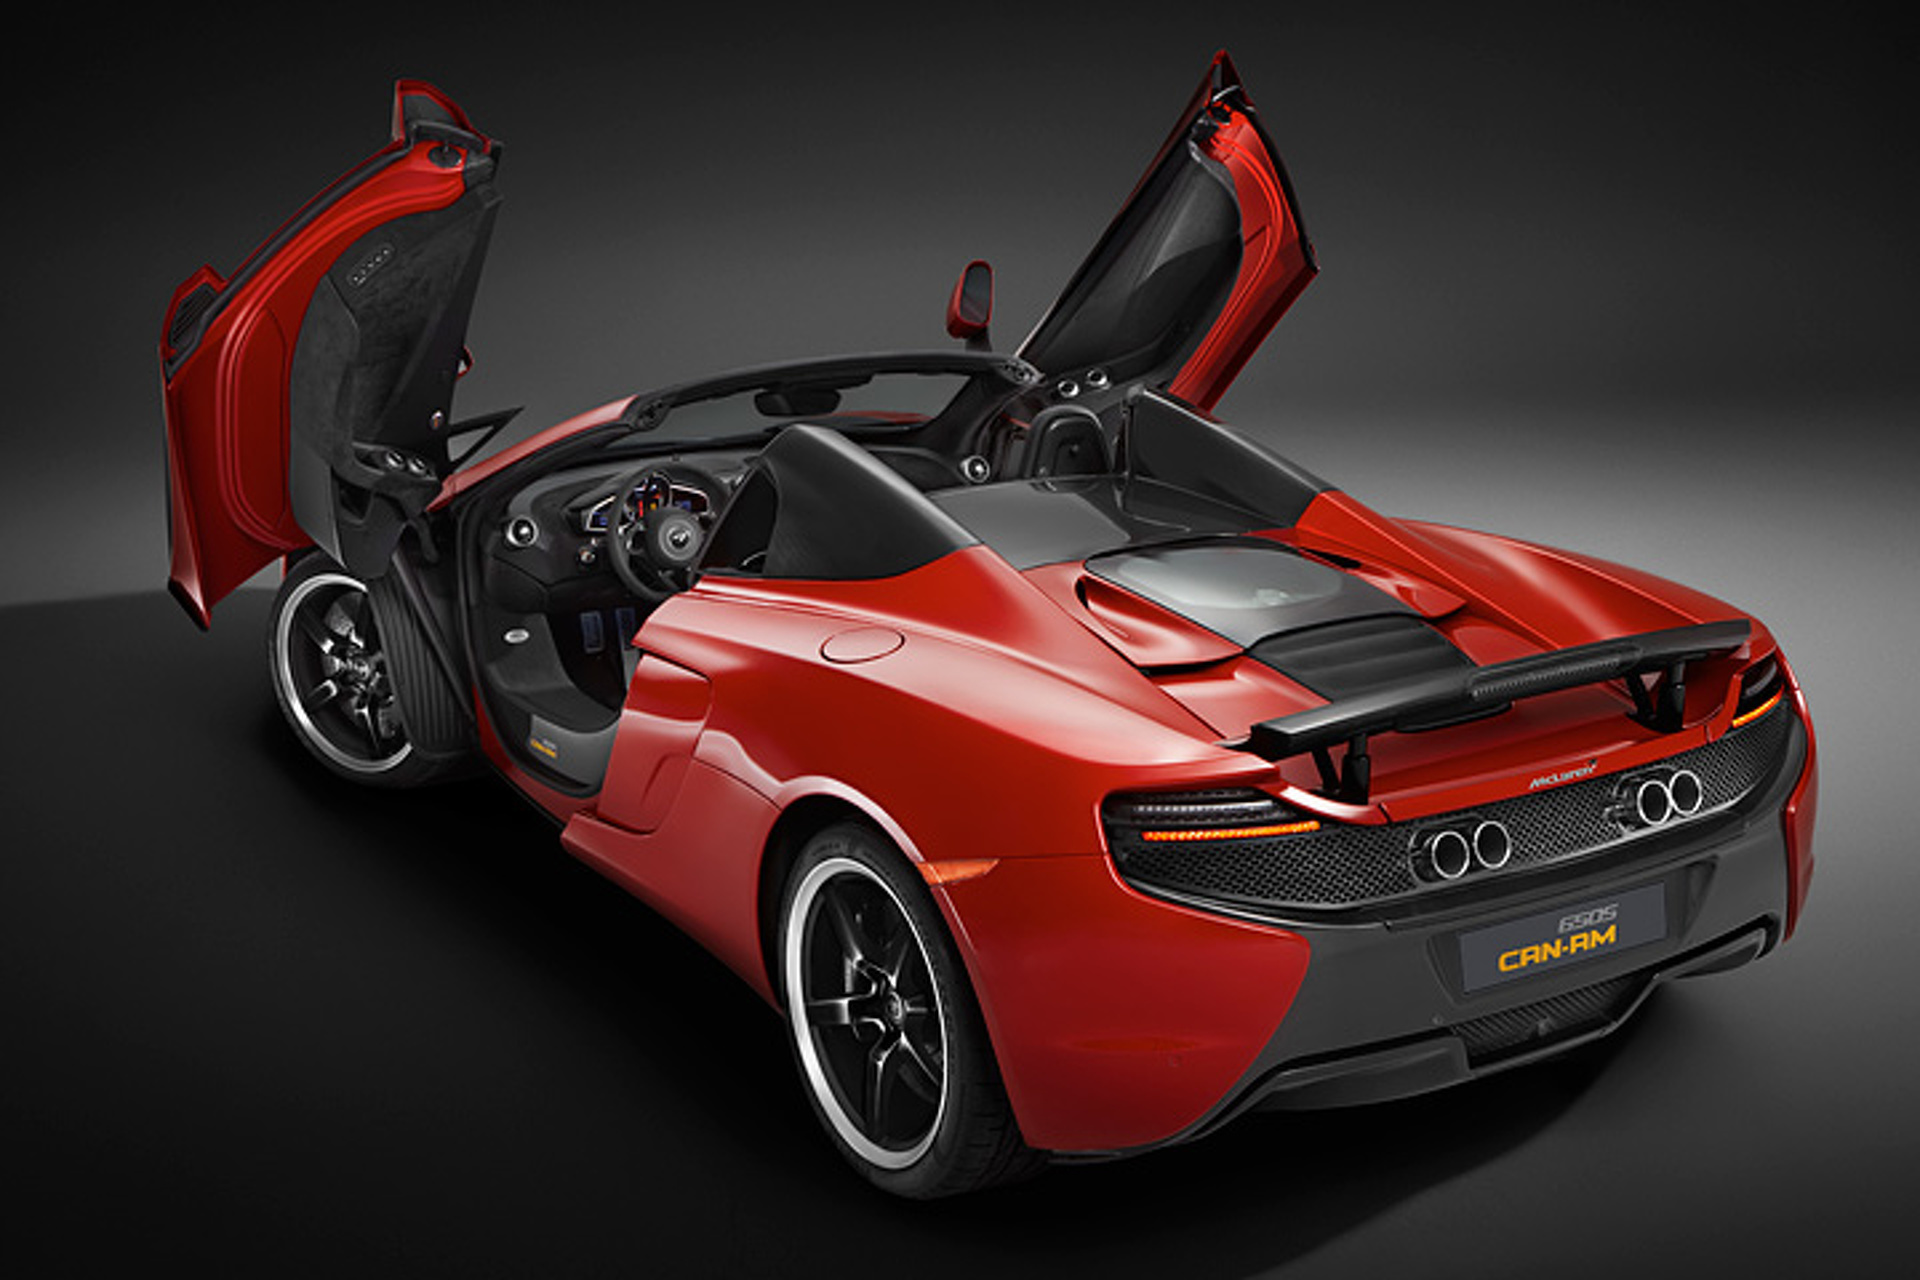 McLaren Romances the '60s in its Limited Edition 650S Can-Am